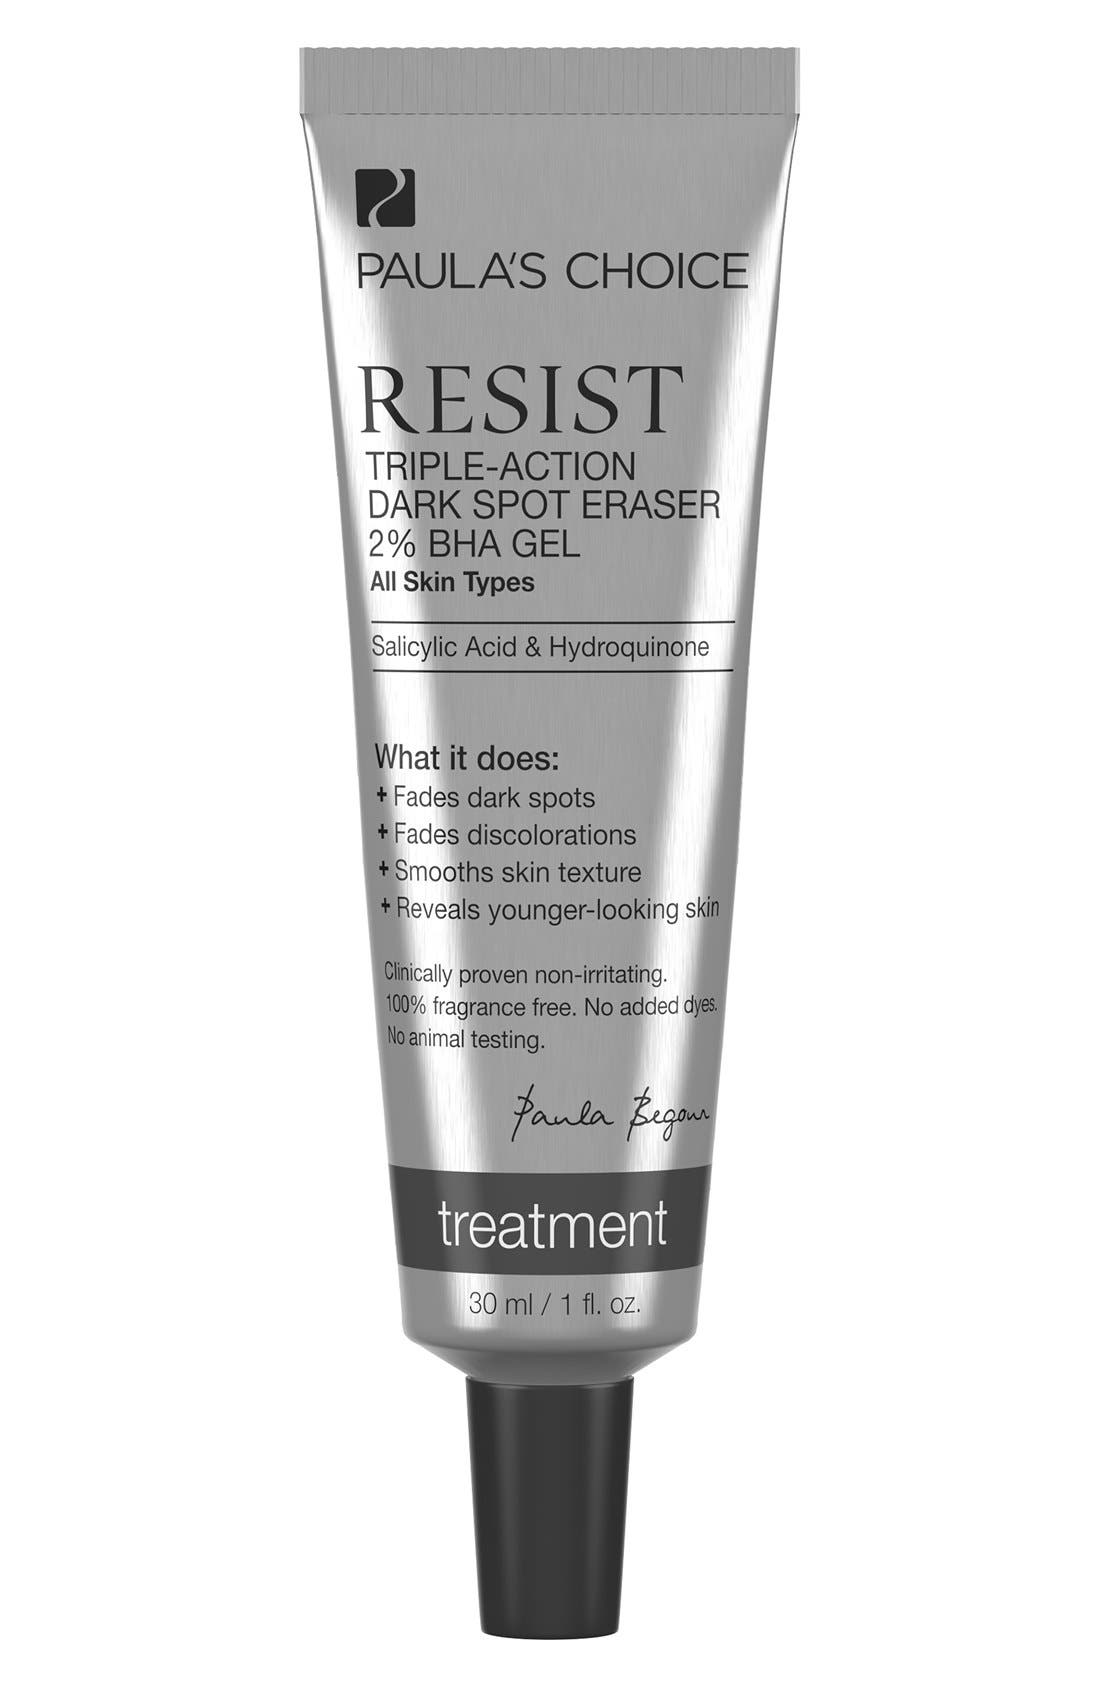 Paula's Choice Resist Triple Action Dark Spot Eraser 2% BHA Gel